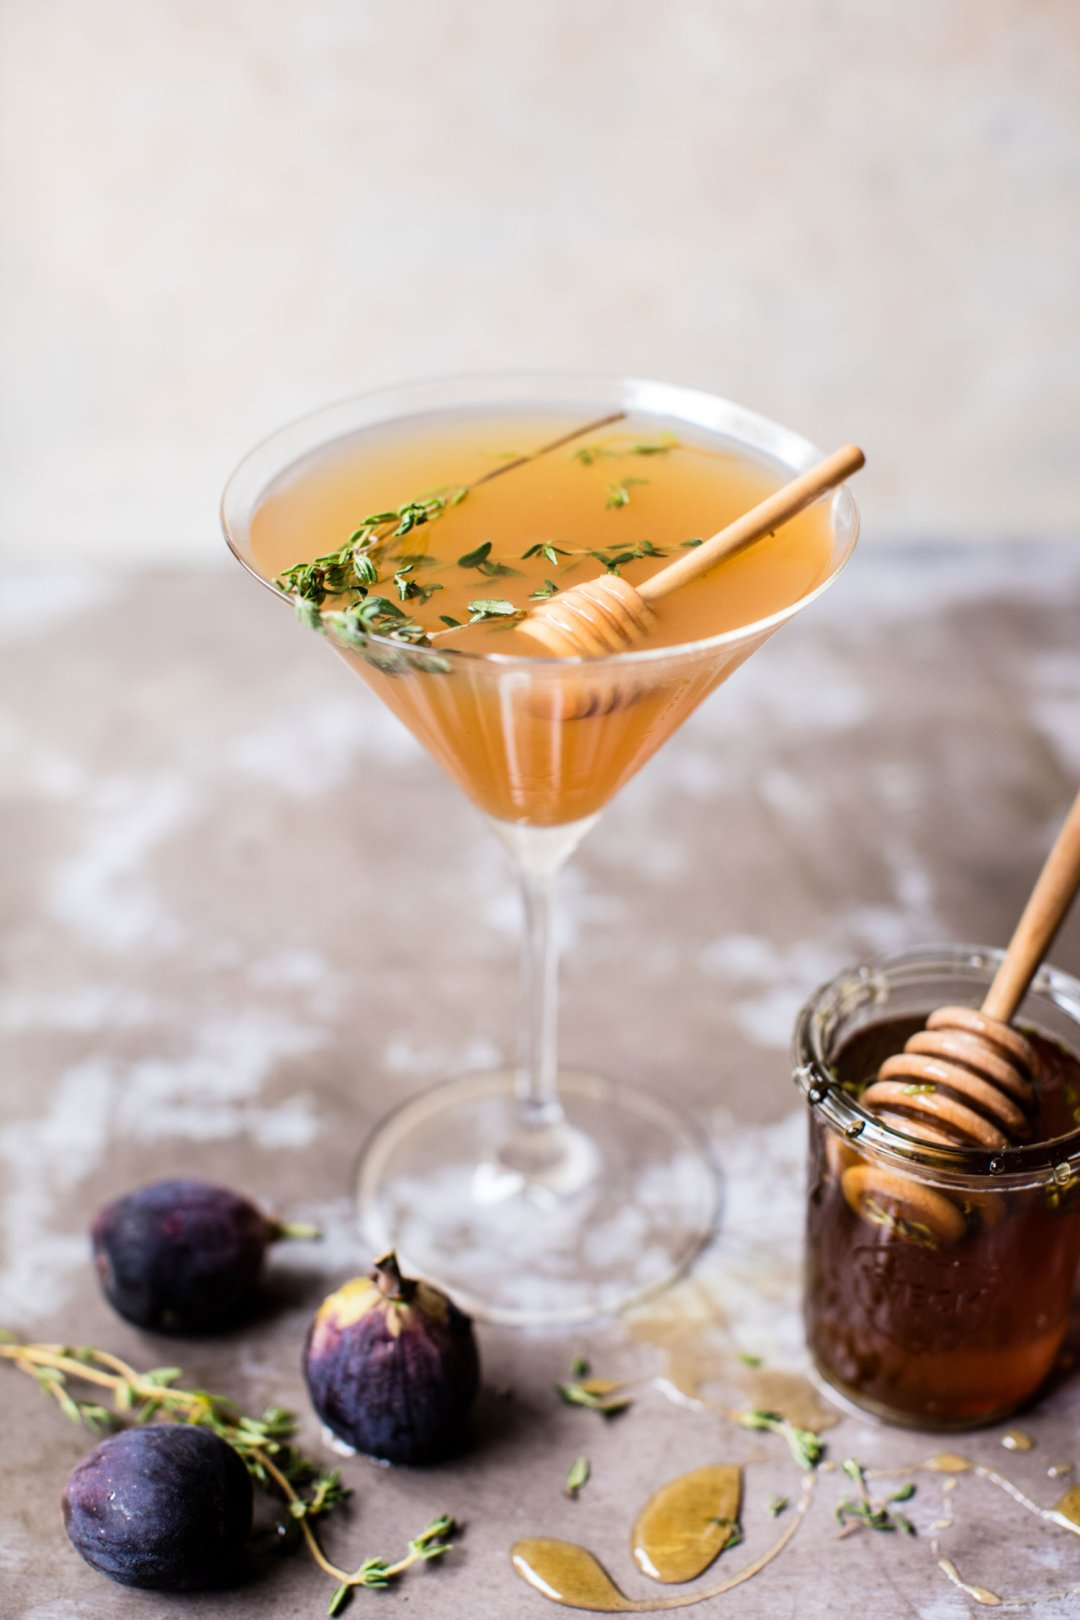 Honey and fig martini garnished with fresh thyme next to a glass honey jar and three fresh figs